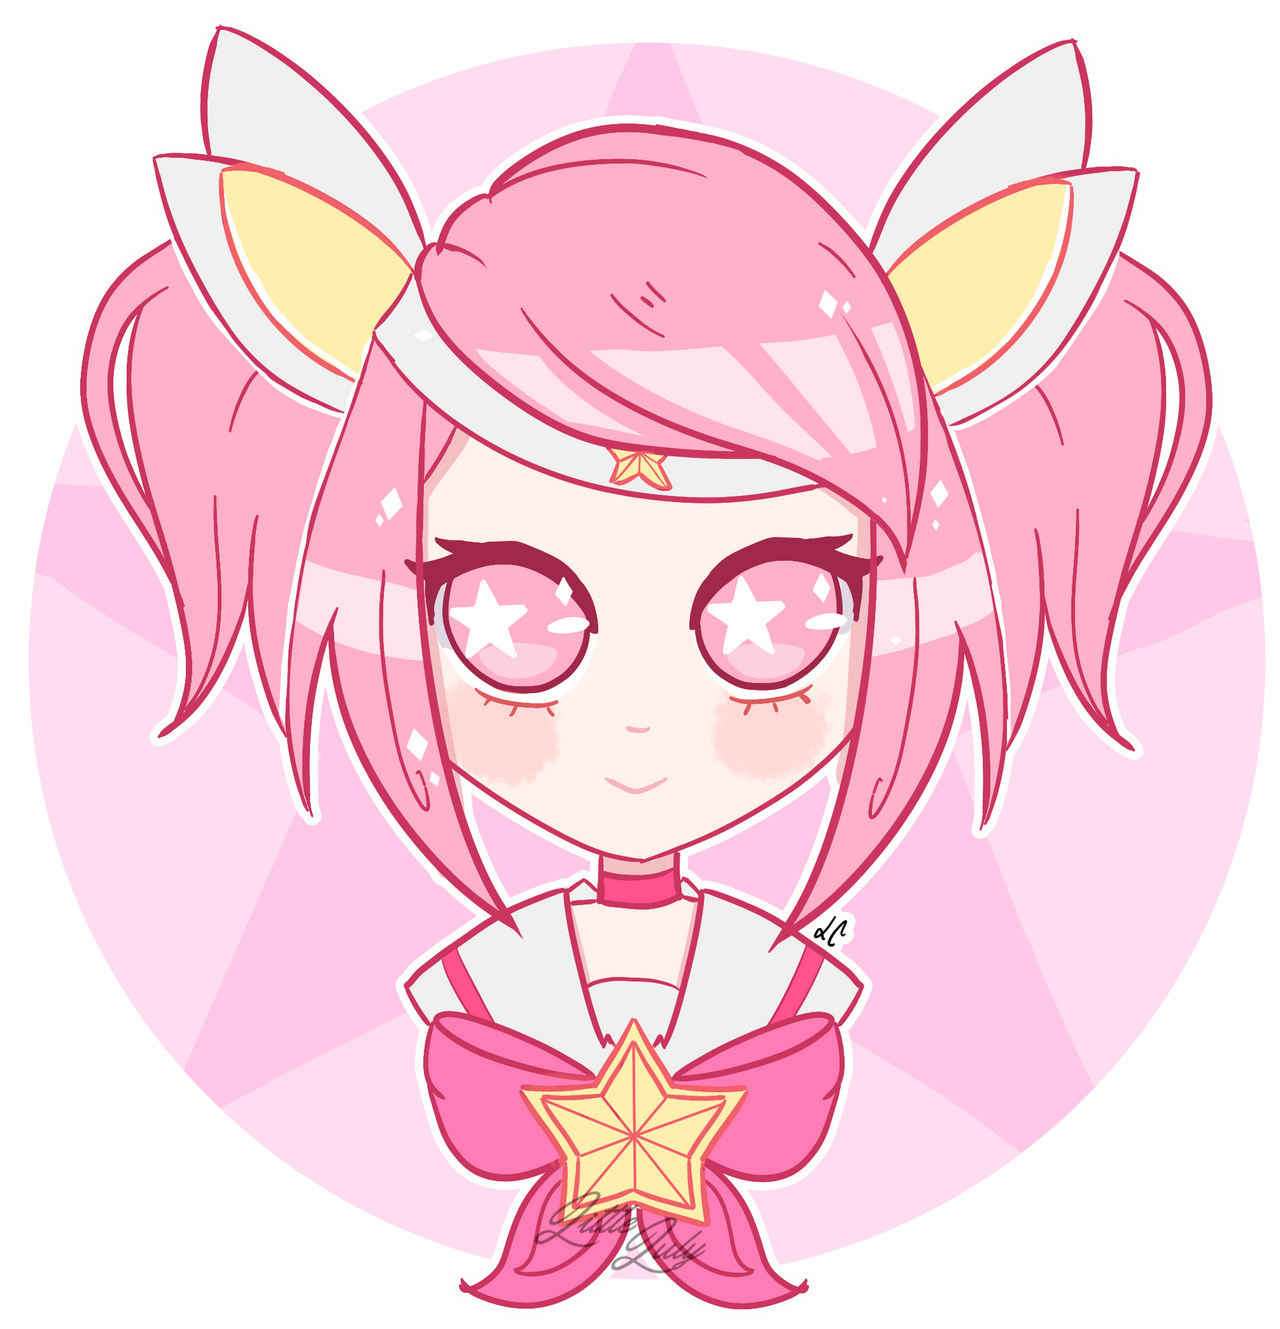 Lux StarGuardian by LittleLuly